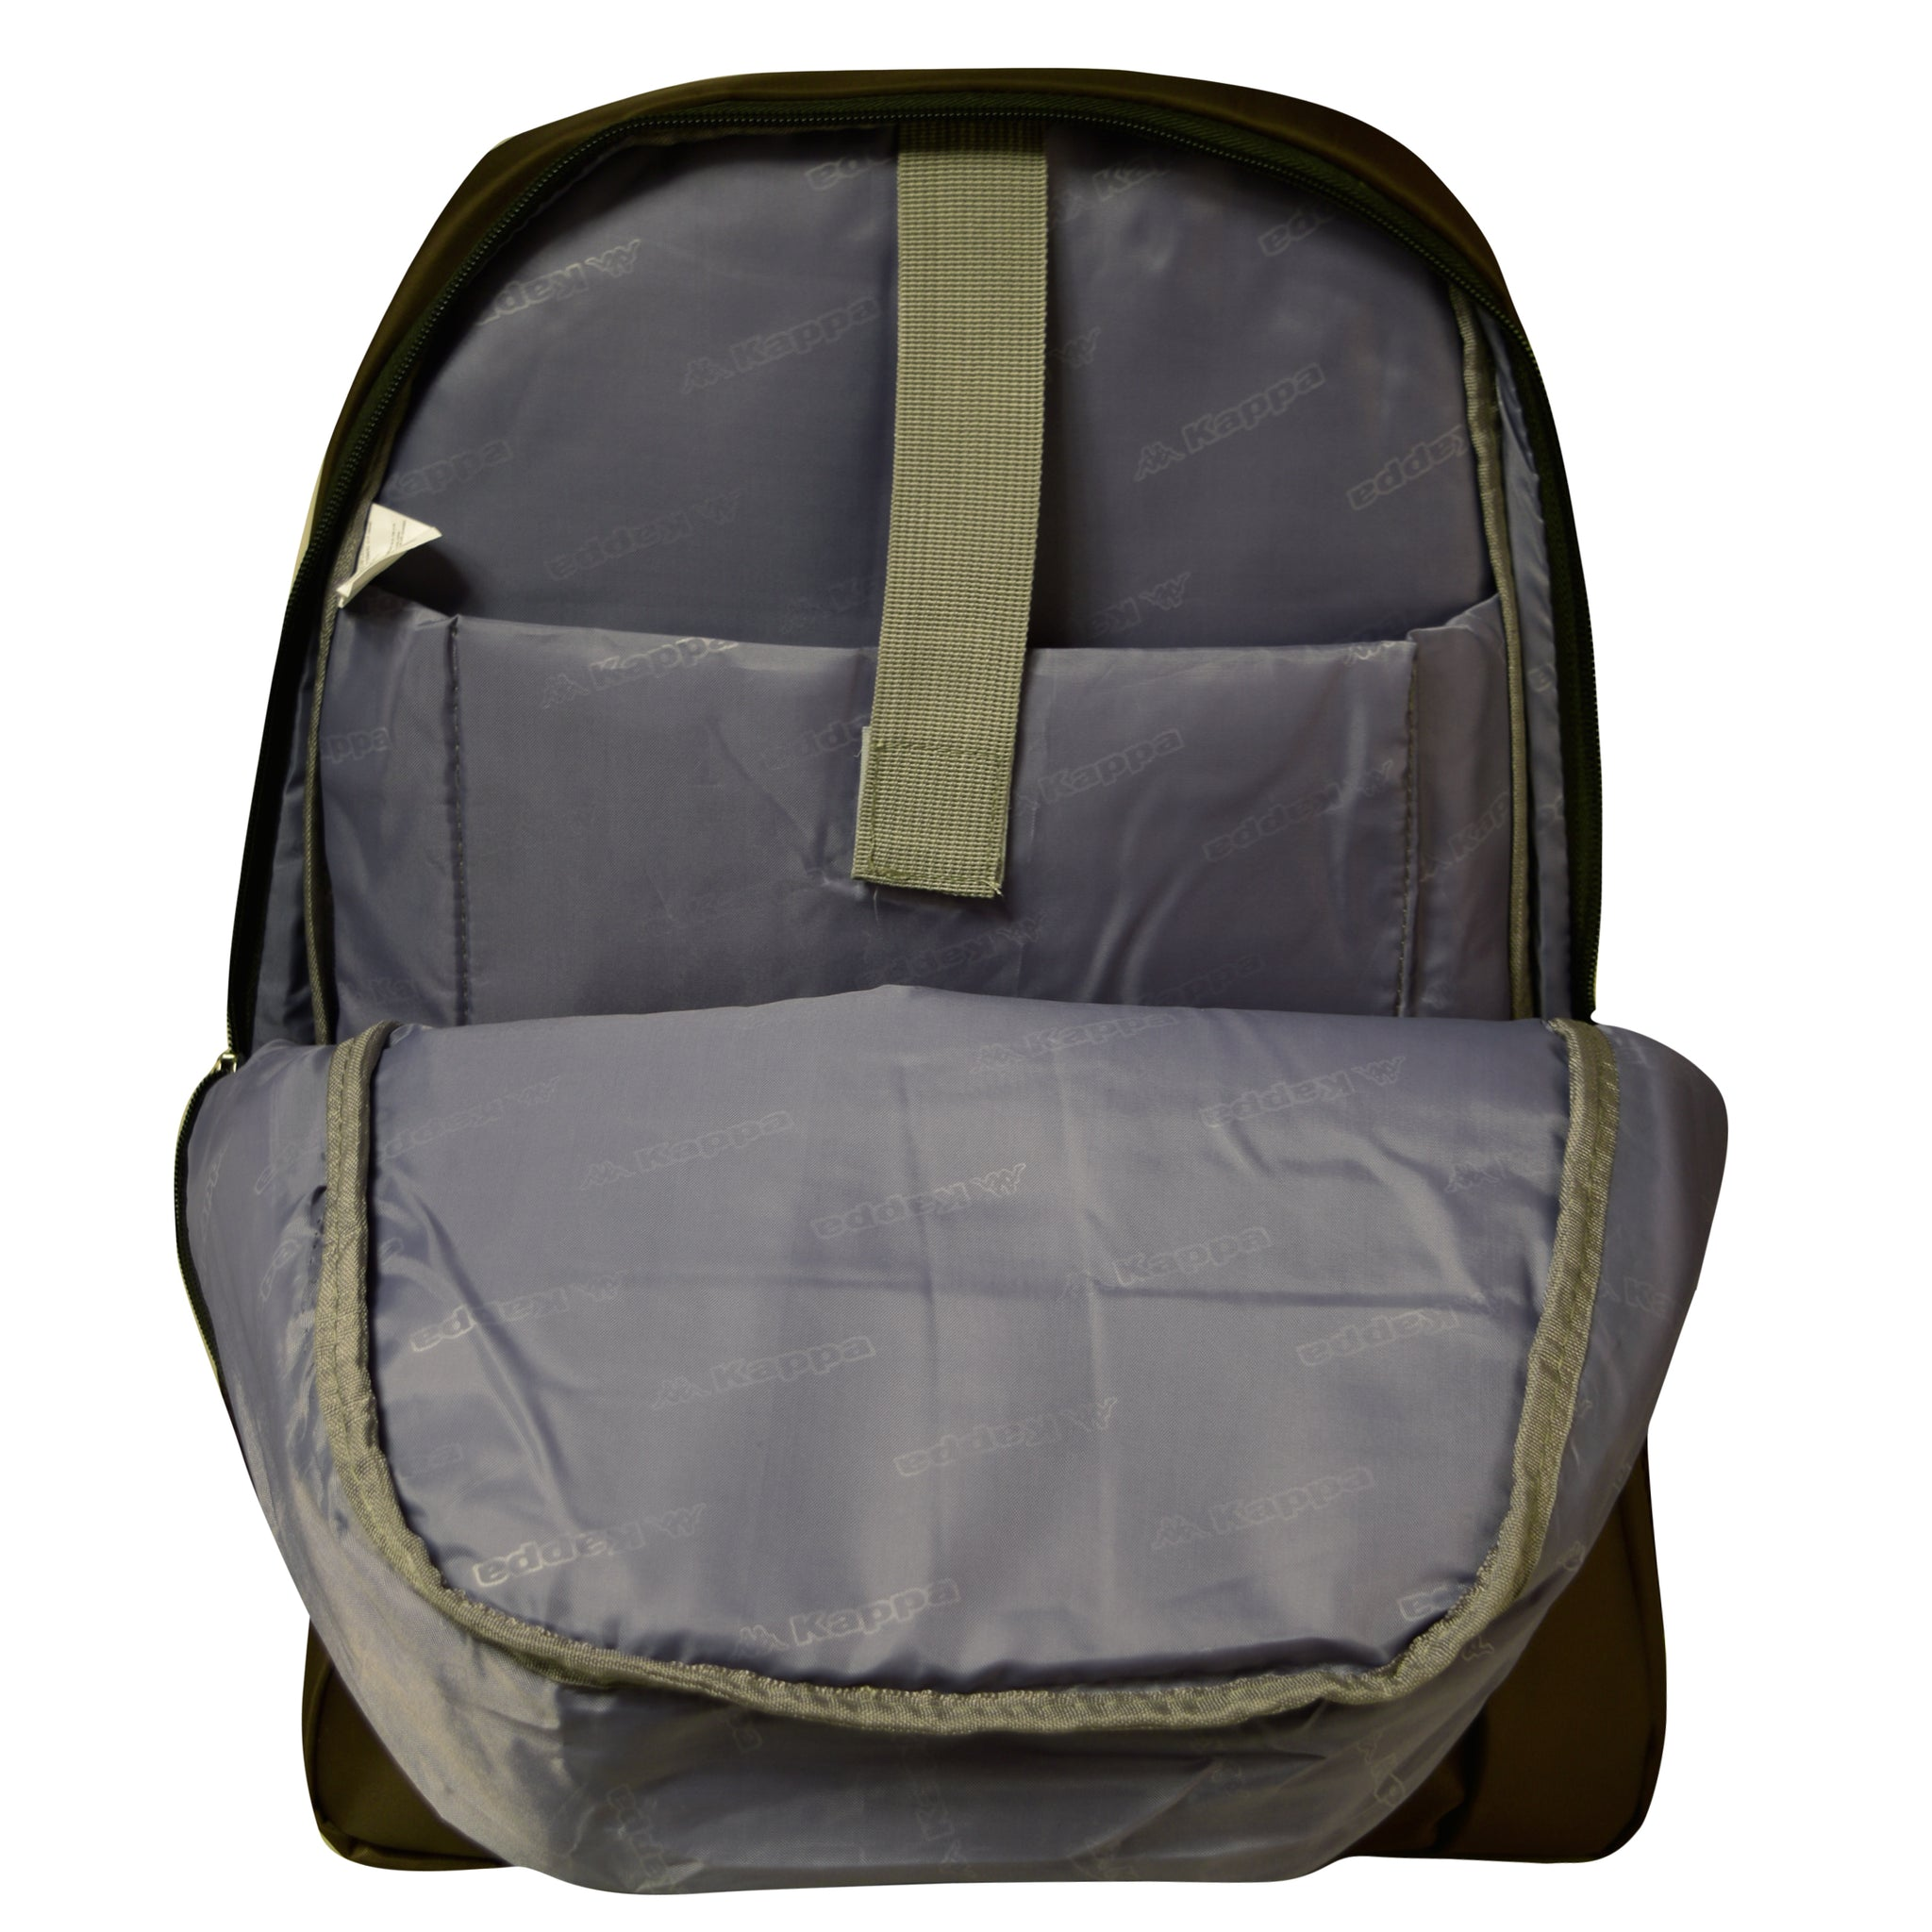 BackPack Lifestyle PLG001-3